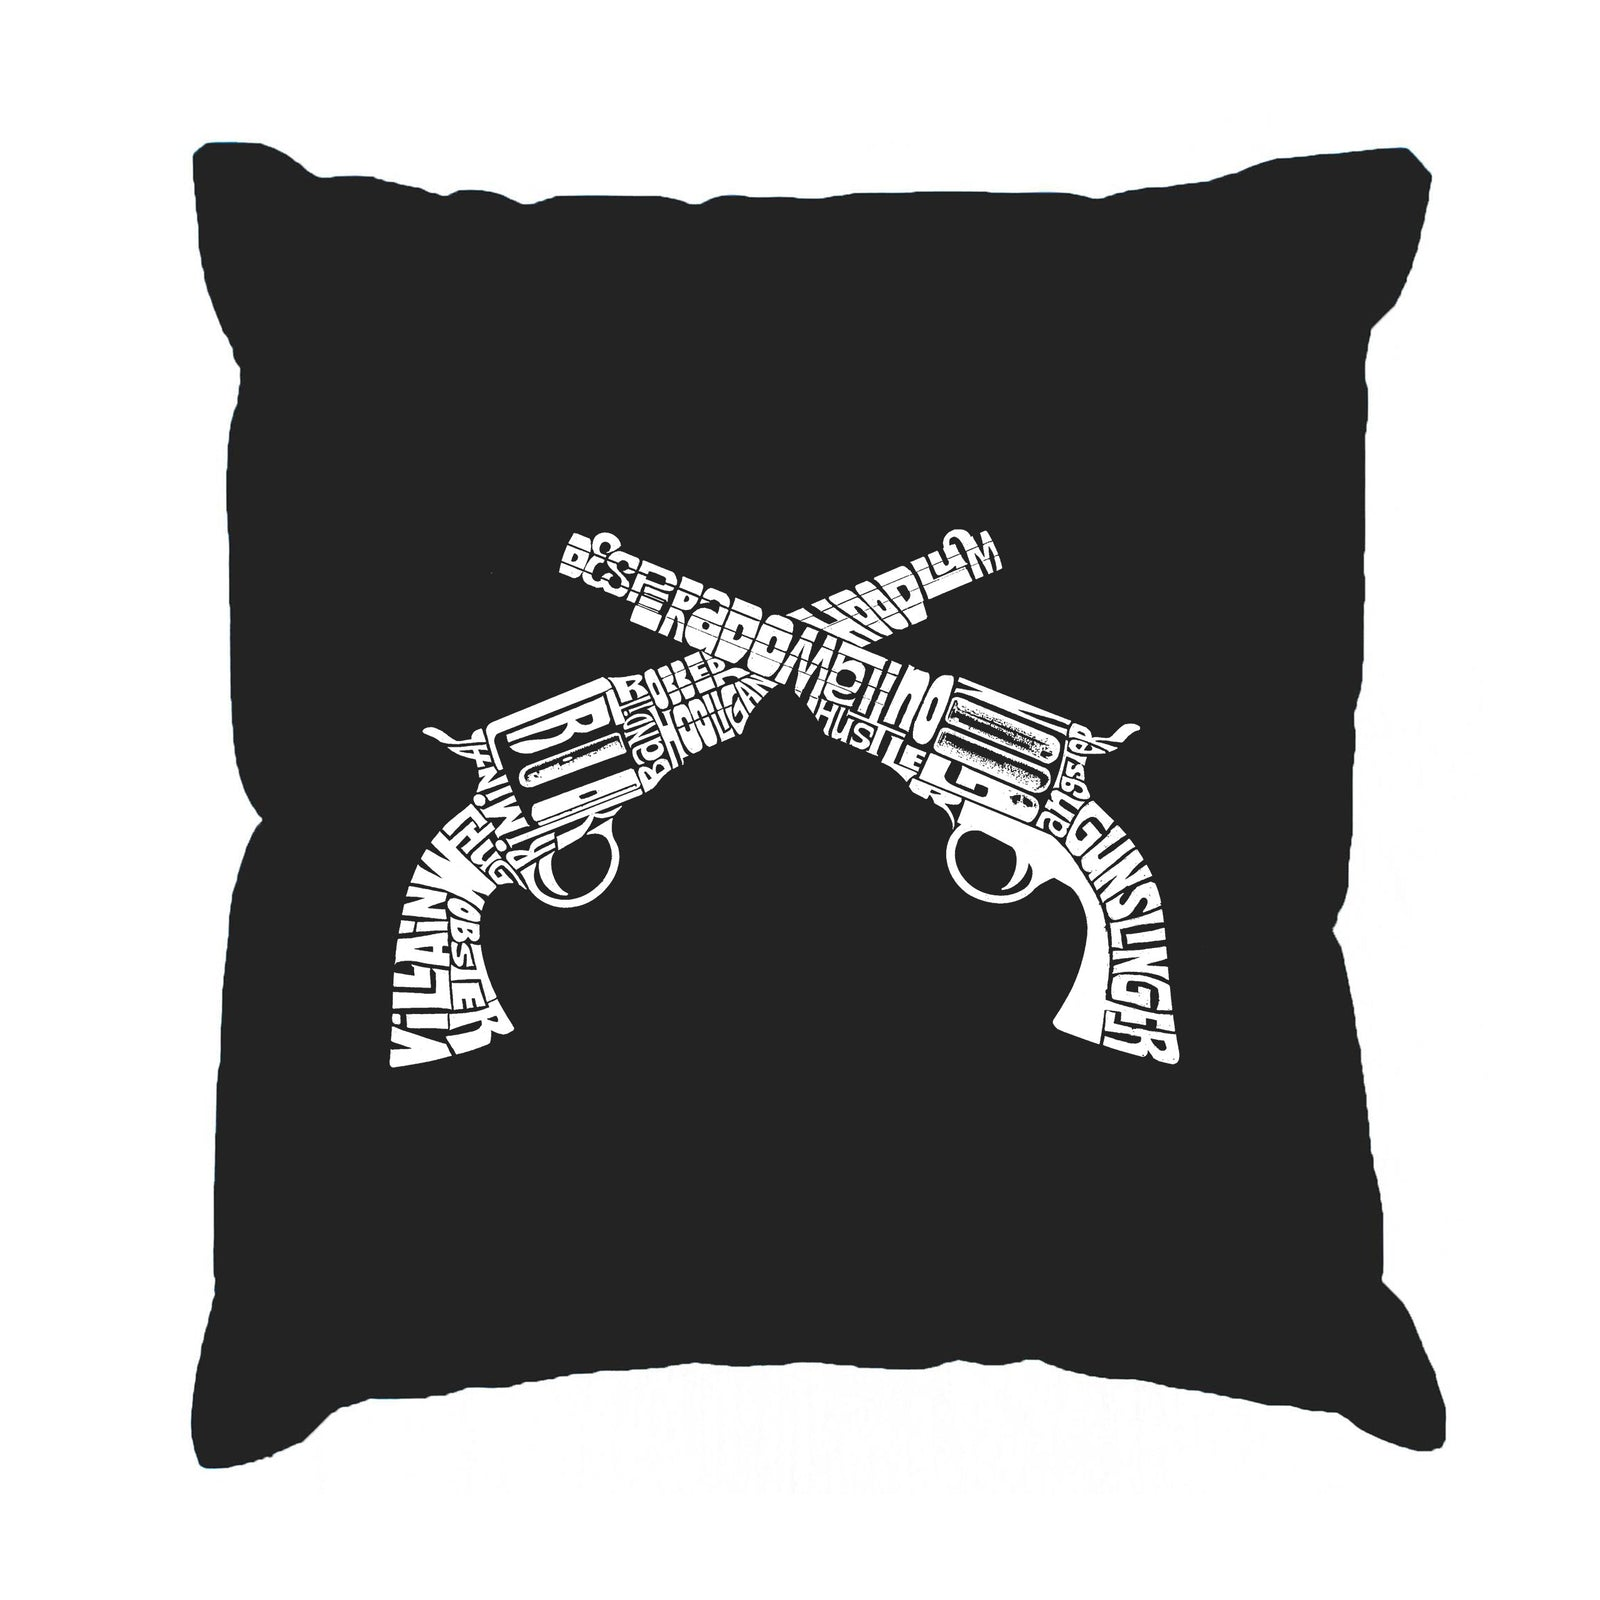 Throw Pillow Cover - CROSSED PISTOLS